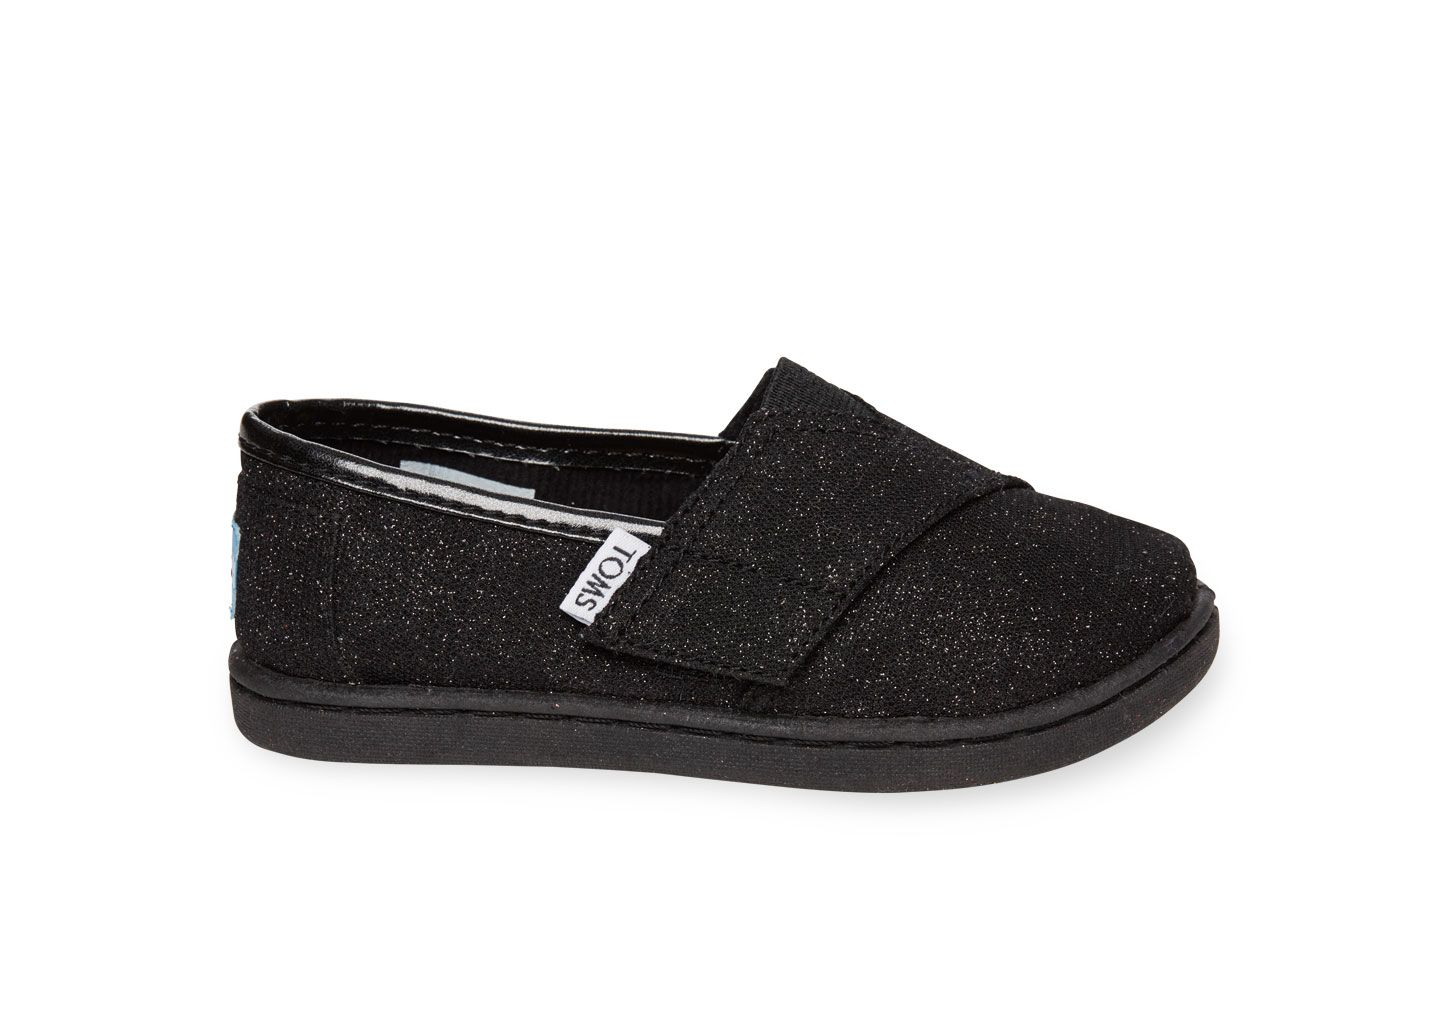 undefined Black Glimmer Tiny TOMS Classics